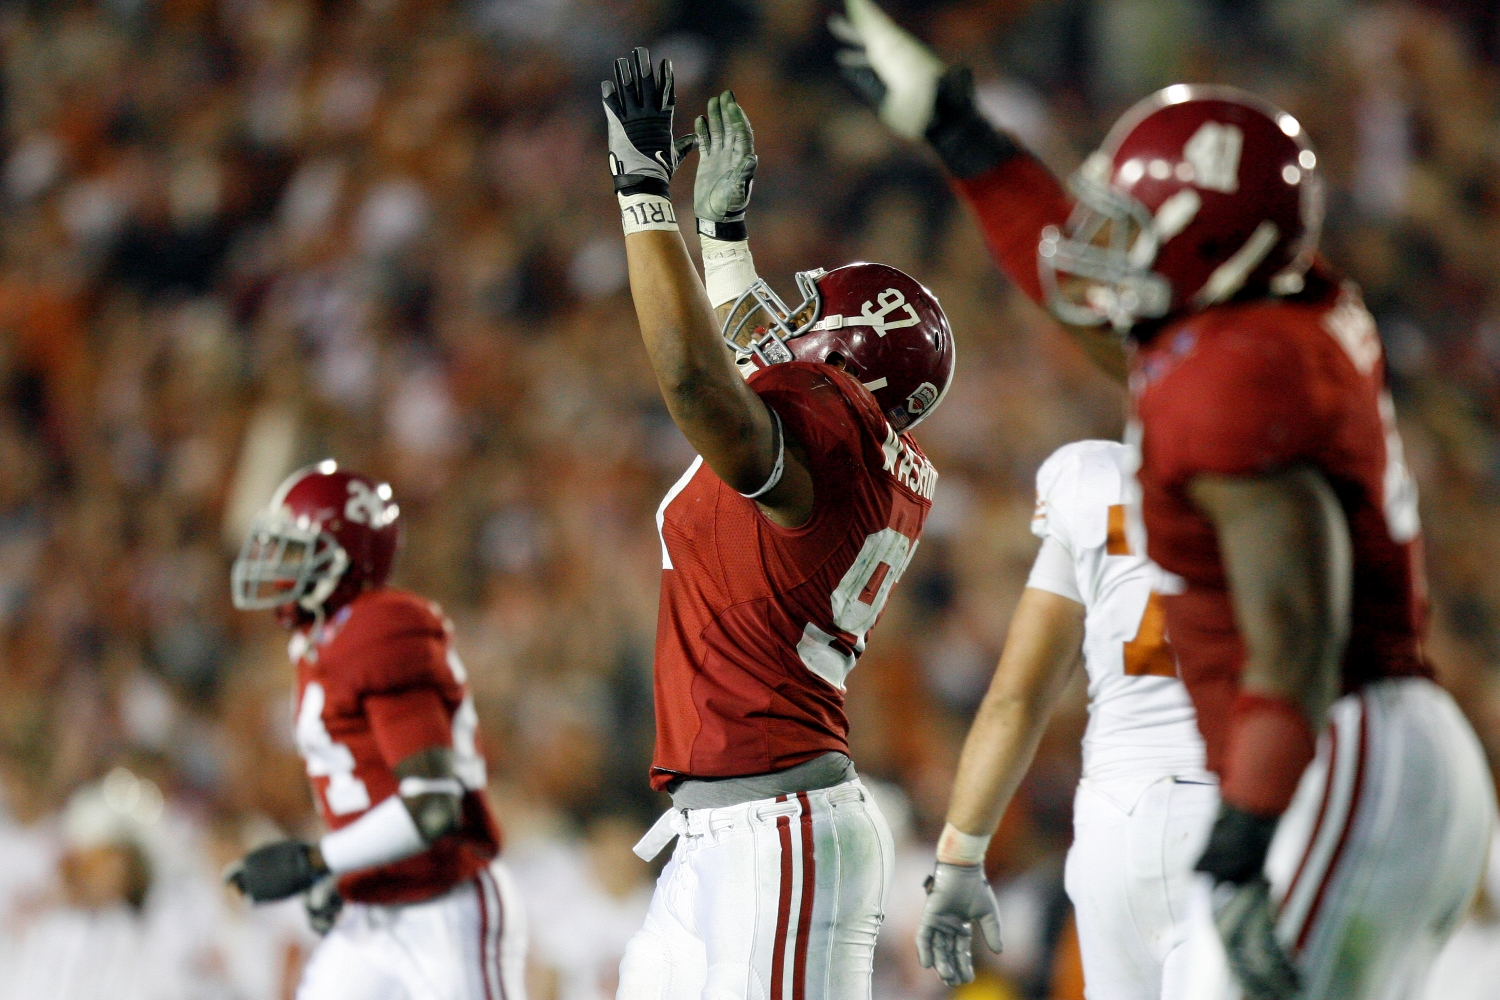 Nick Saban and the Alabama Crimson Tide Suffer Second Heartbreaking Loss in Just a Matter of Months